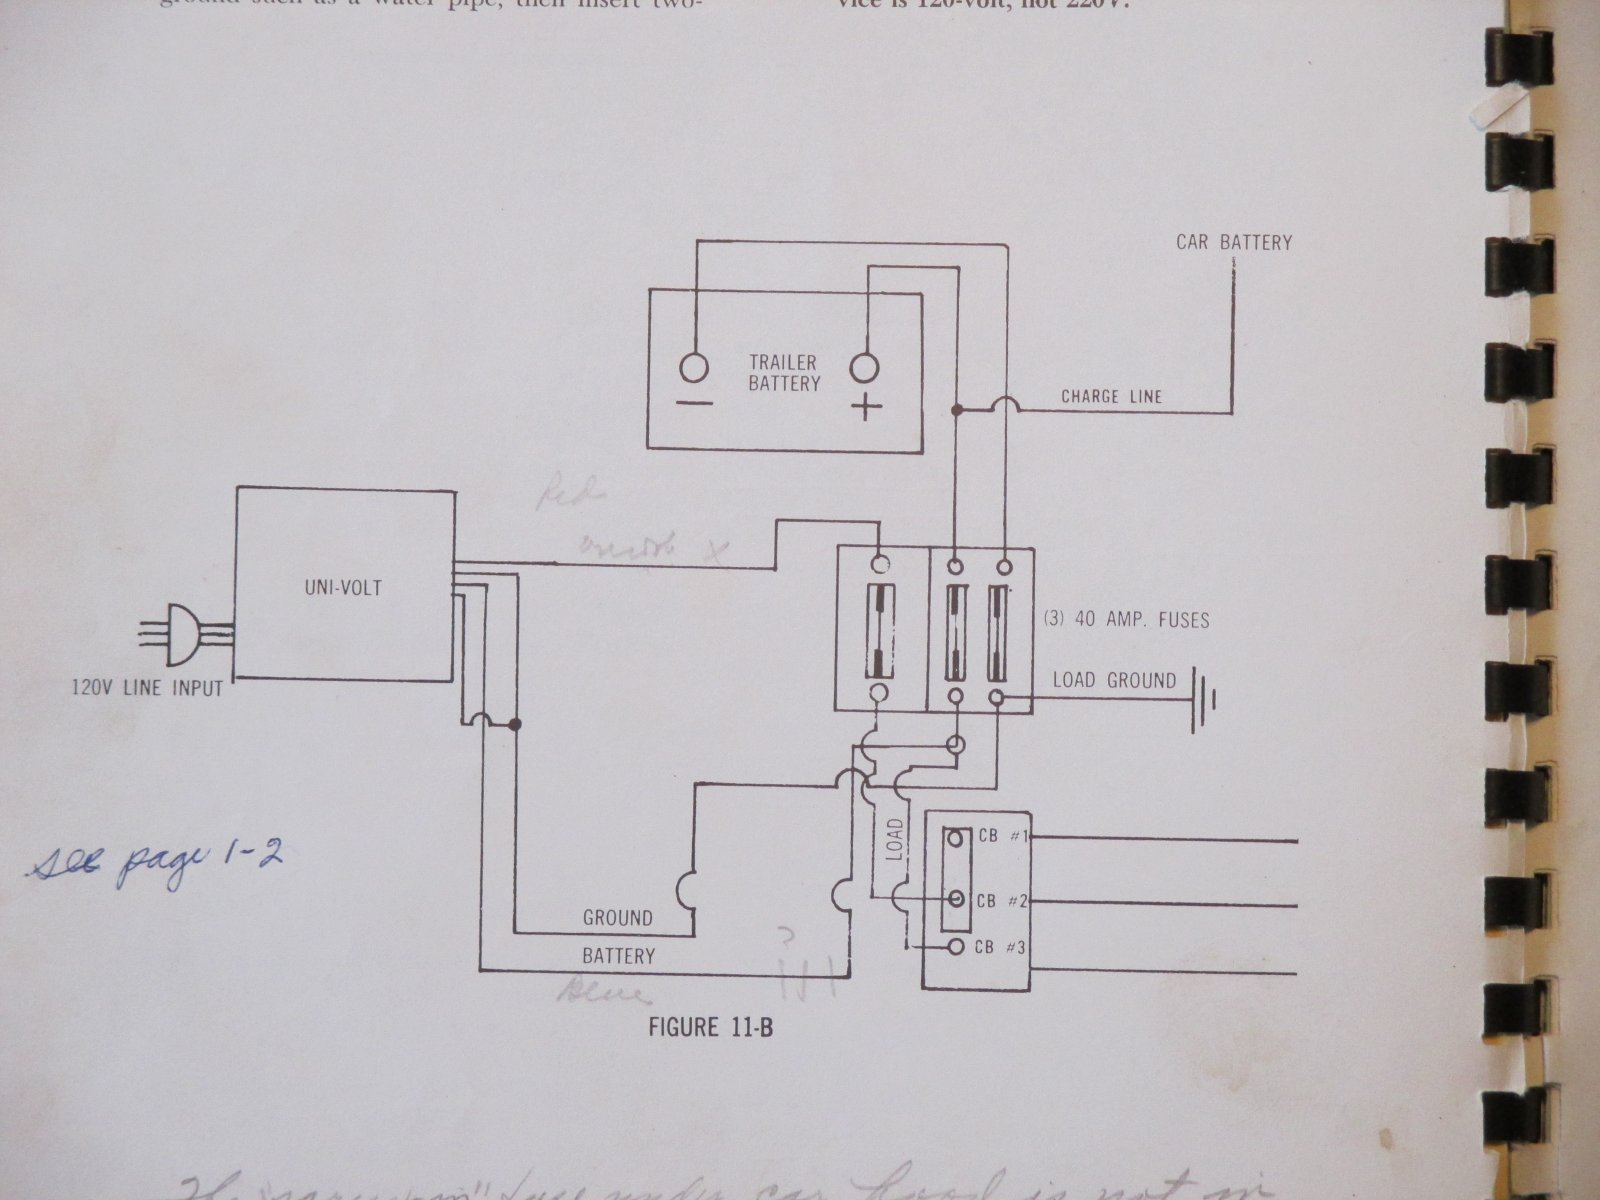 Need electrical help on 1965 Caravel please - Airstream Forums on solar battery charger wiring diagram, marine battery charger wiring diagram, battery charging circuit diagram, battery charging system diagram,